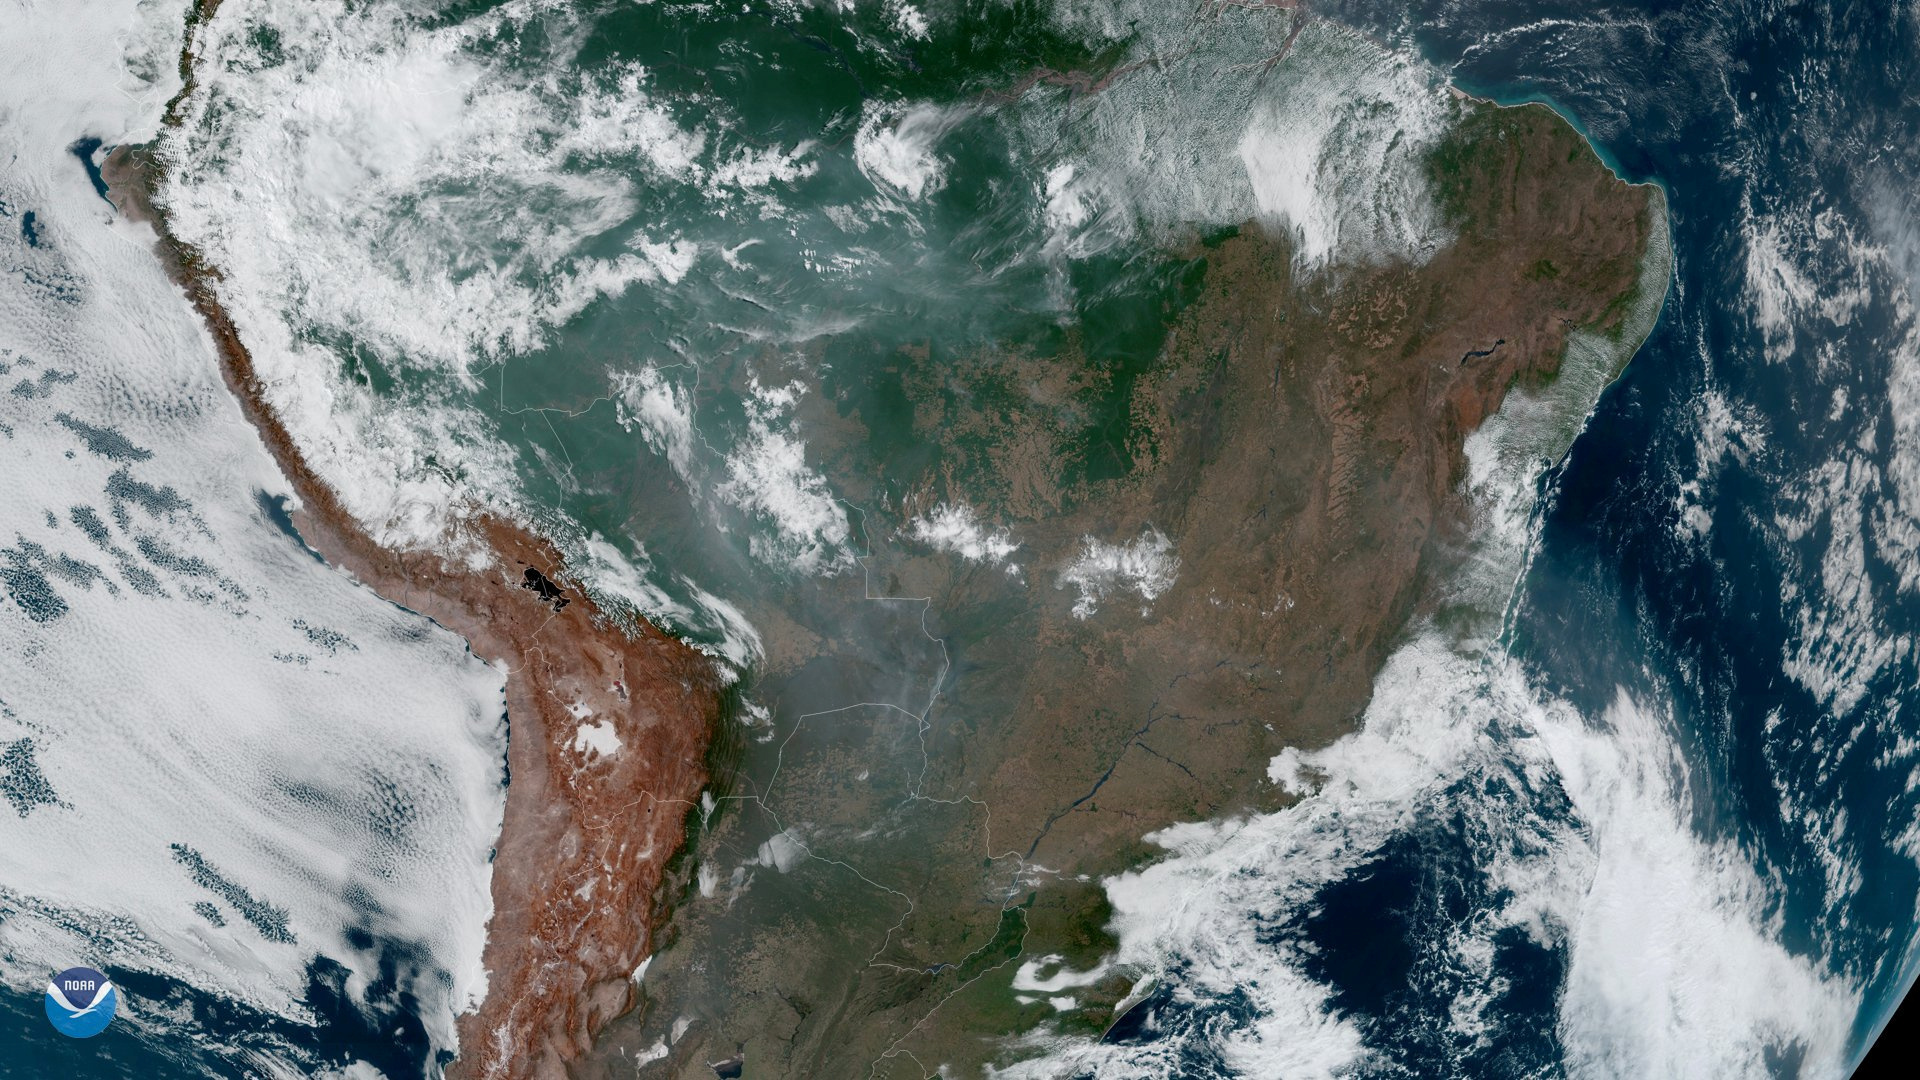 Fires, burning in the <HIT>Amazon</HIT> Rainforest, are pictured from space, captured by the geostationary weather satellite GOES-16 on August 21, 2019 in this handout image obtained from social media. NASA/NOAA/Handout via REUTERS THIS IMAGE HAS BEEN SUPPLIED BY A THIRD PARTY